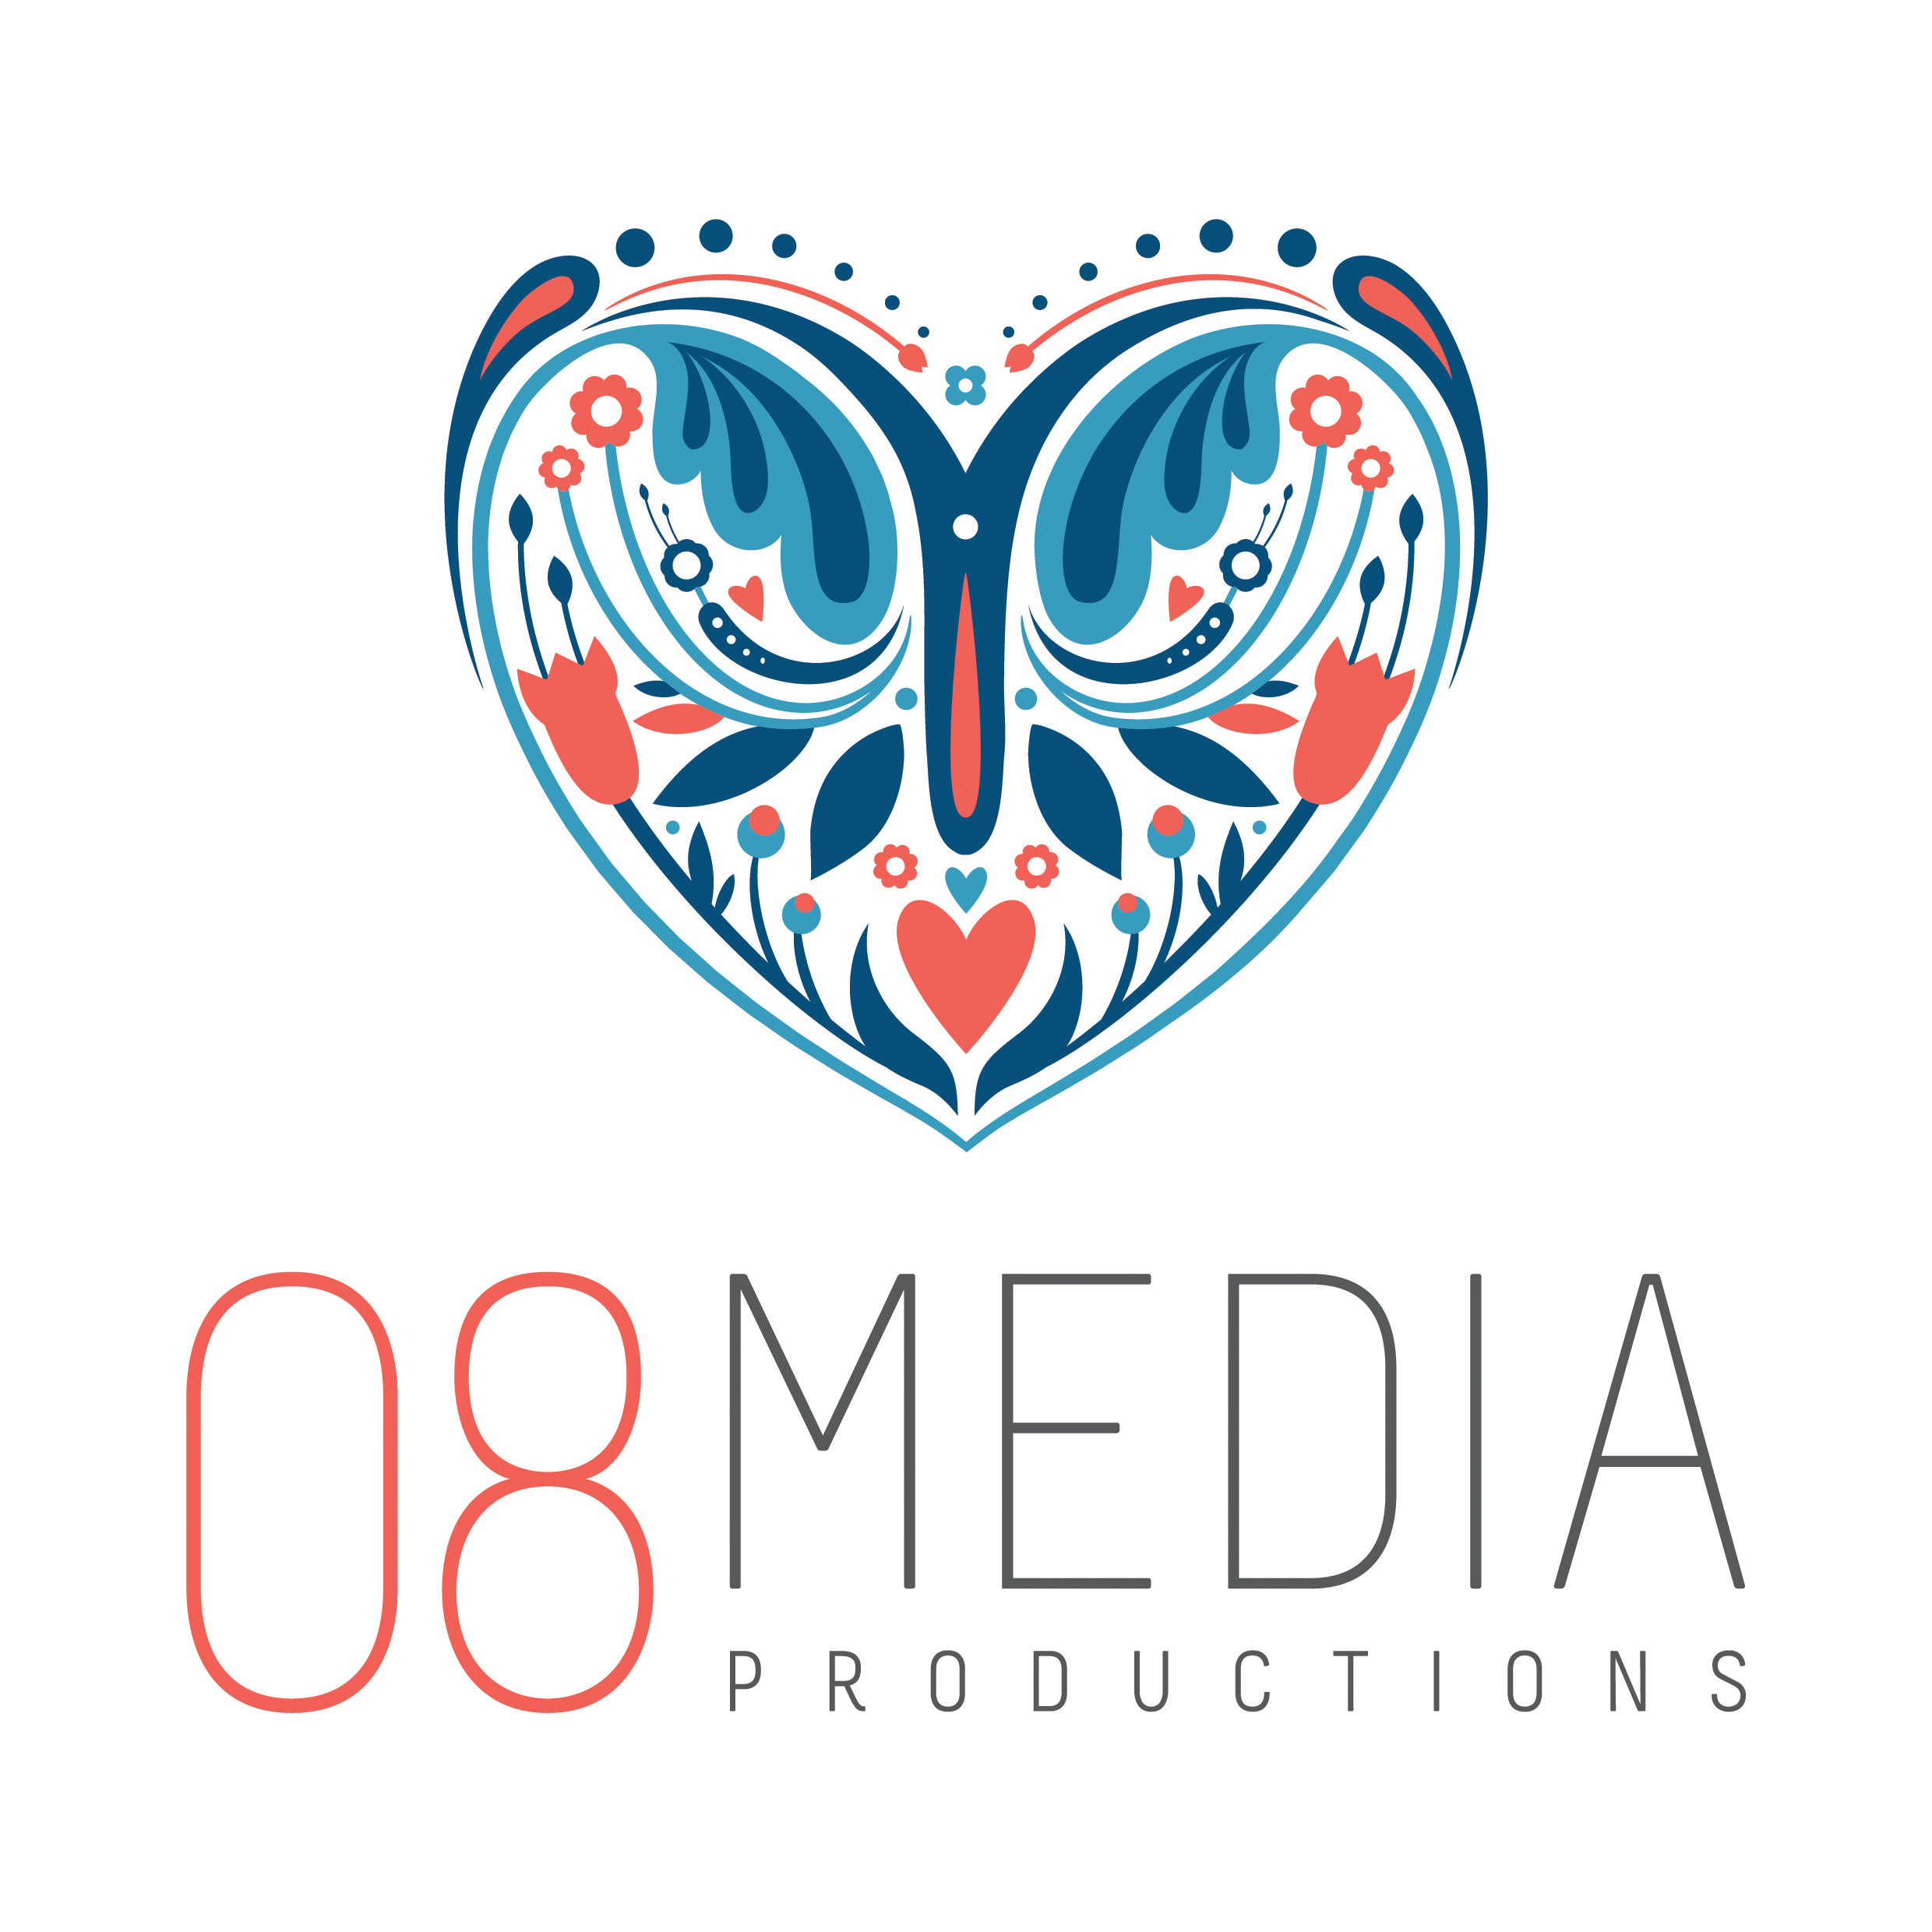 08 Media Productions